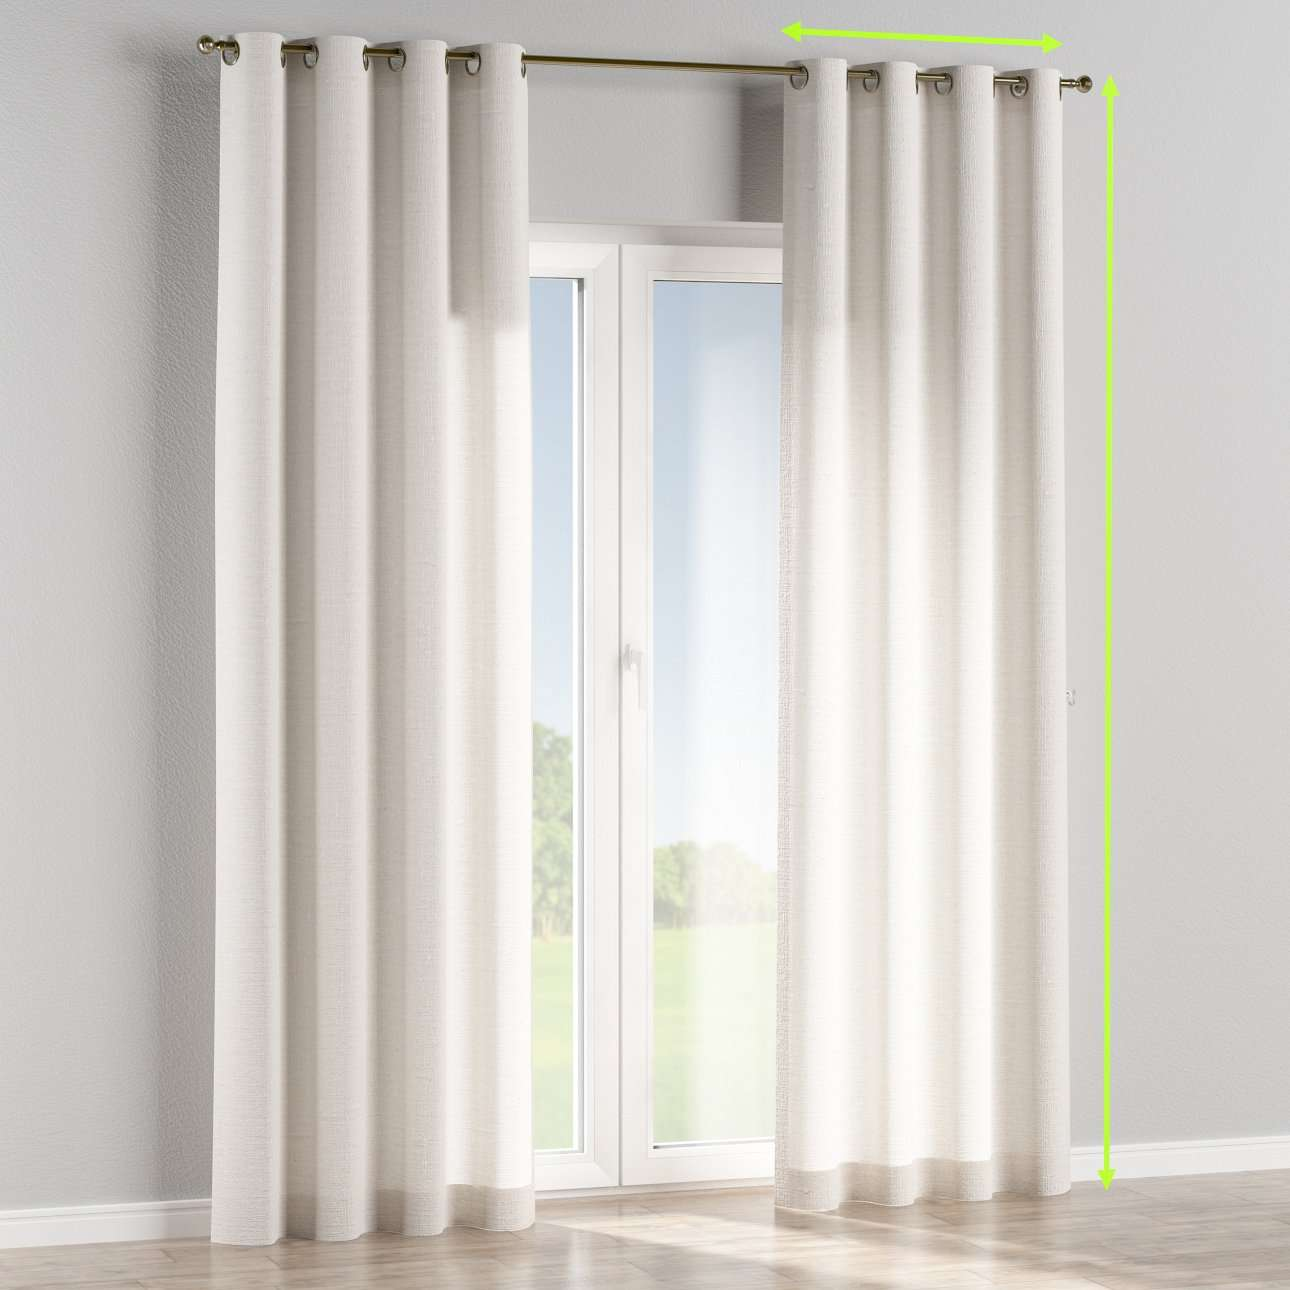 Eyelet lined curtains in collection Linen, fabric: 392-04